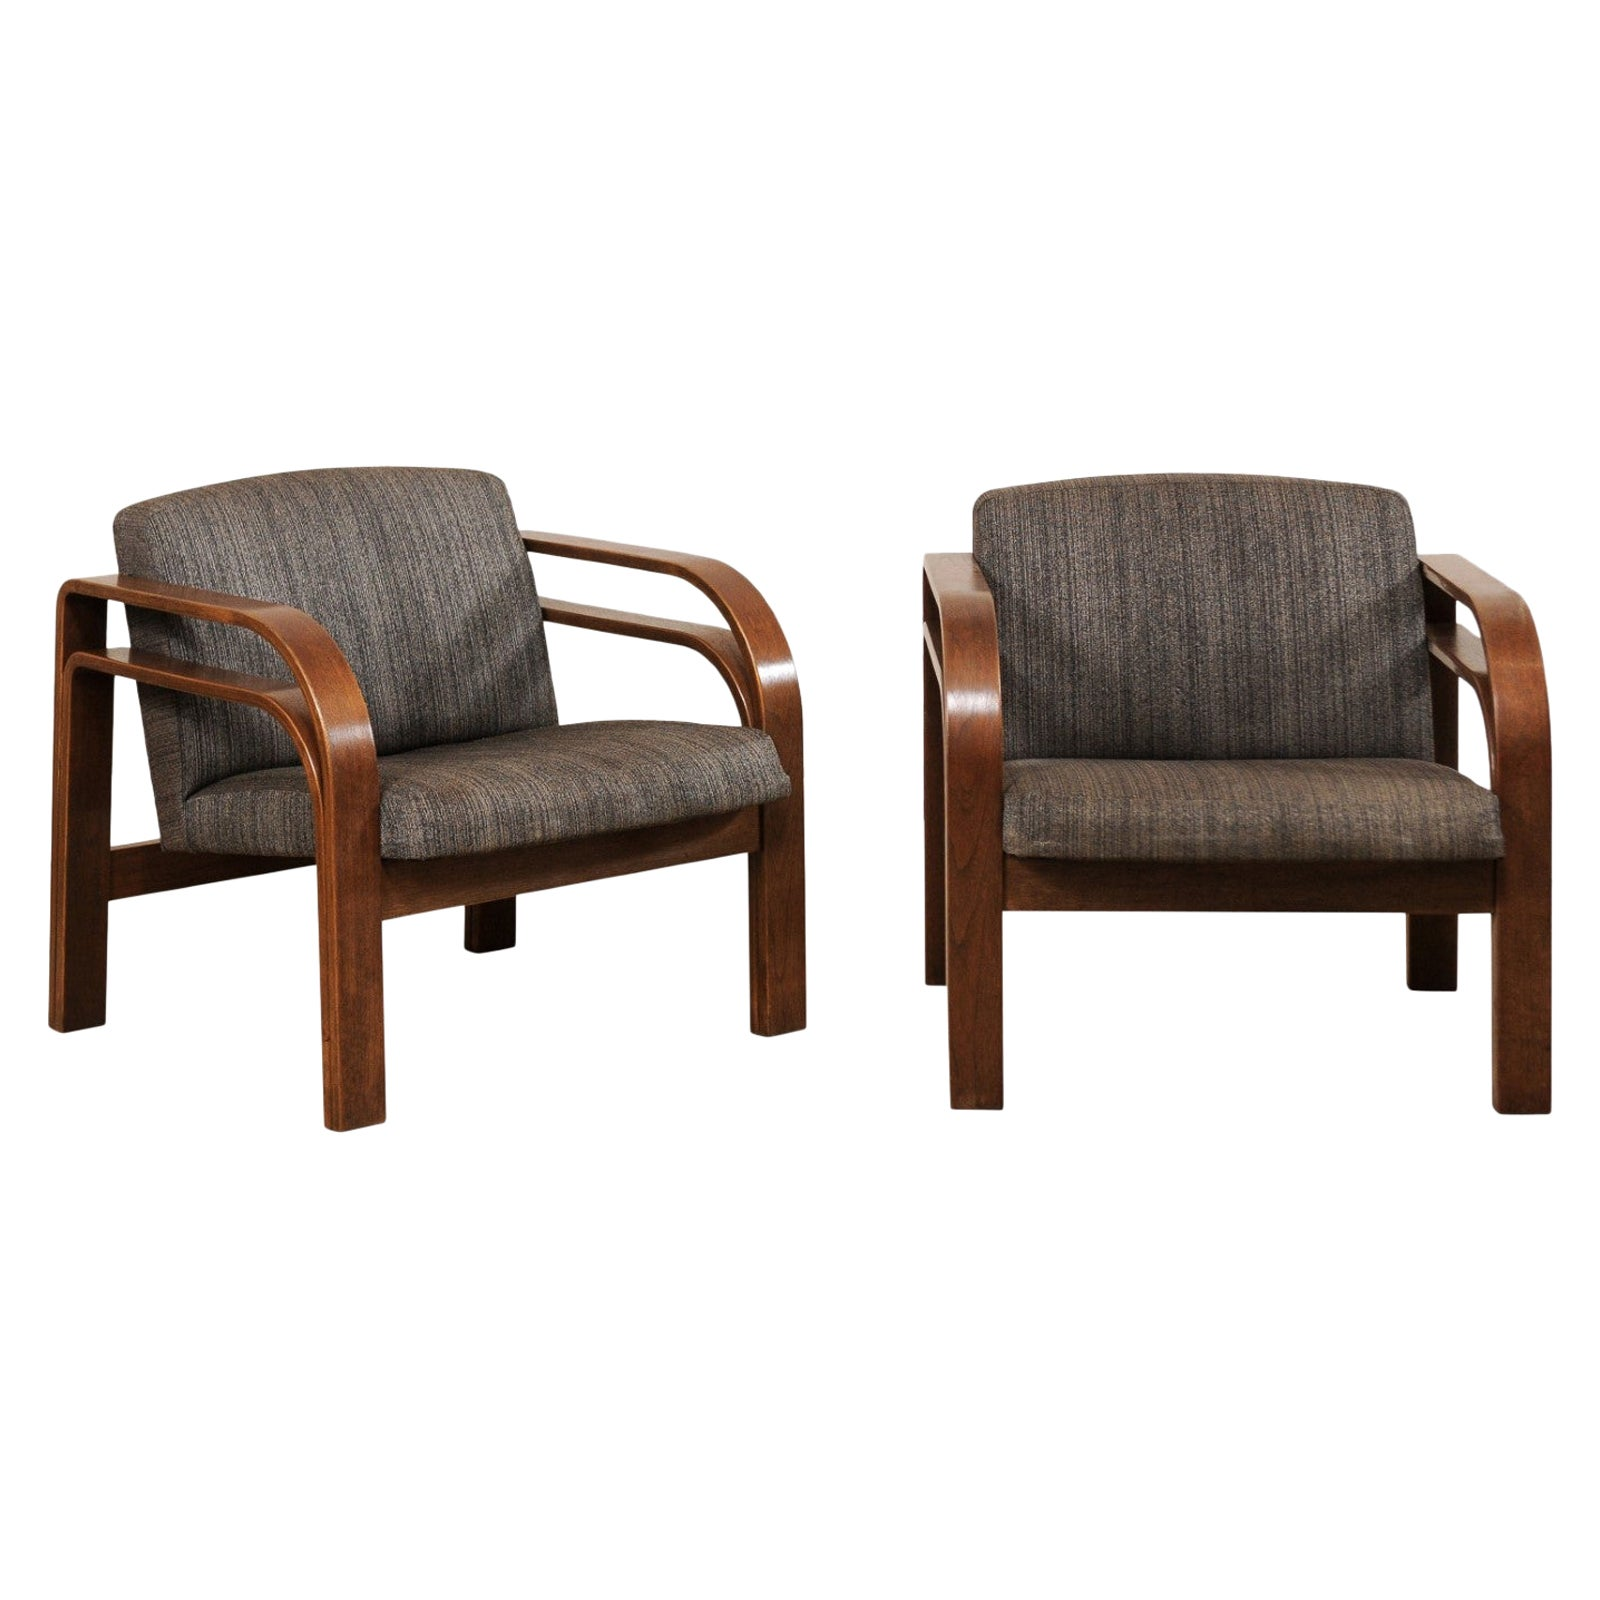 French Pair of Double Bent-Wood Armchairs with Upholstered Seat and Back